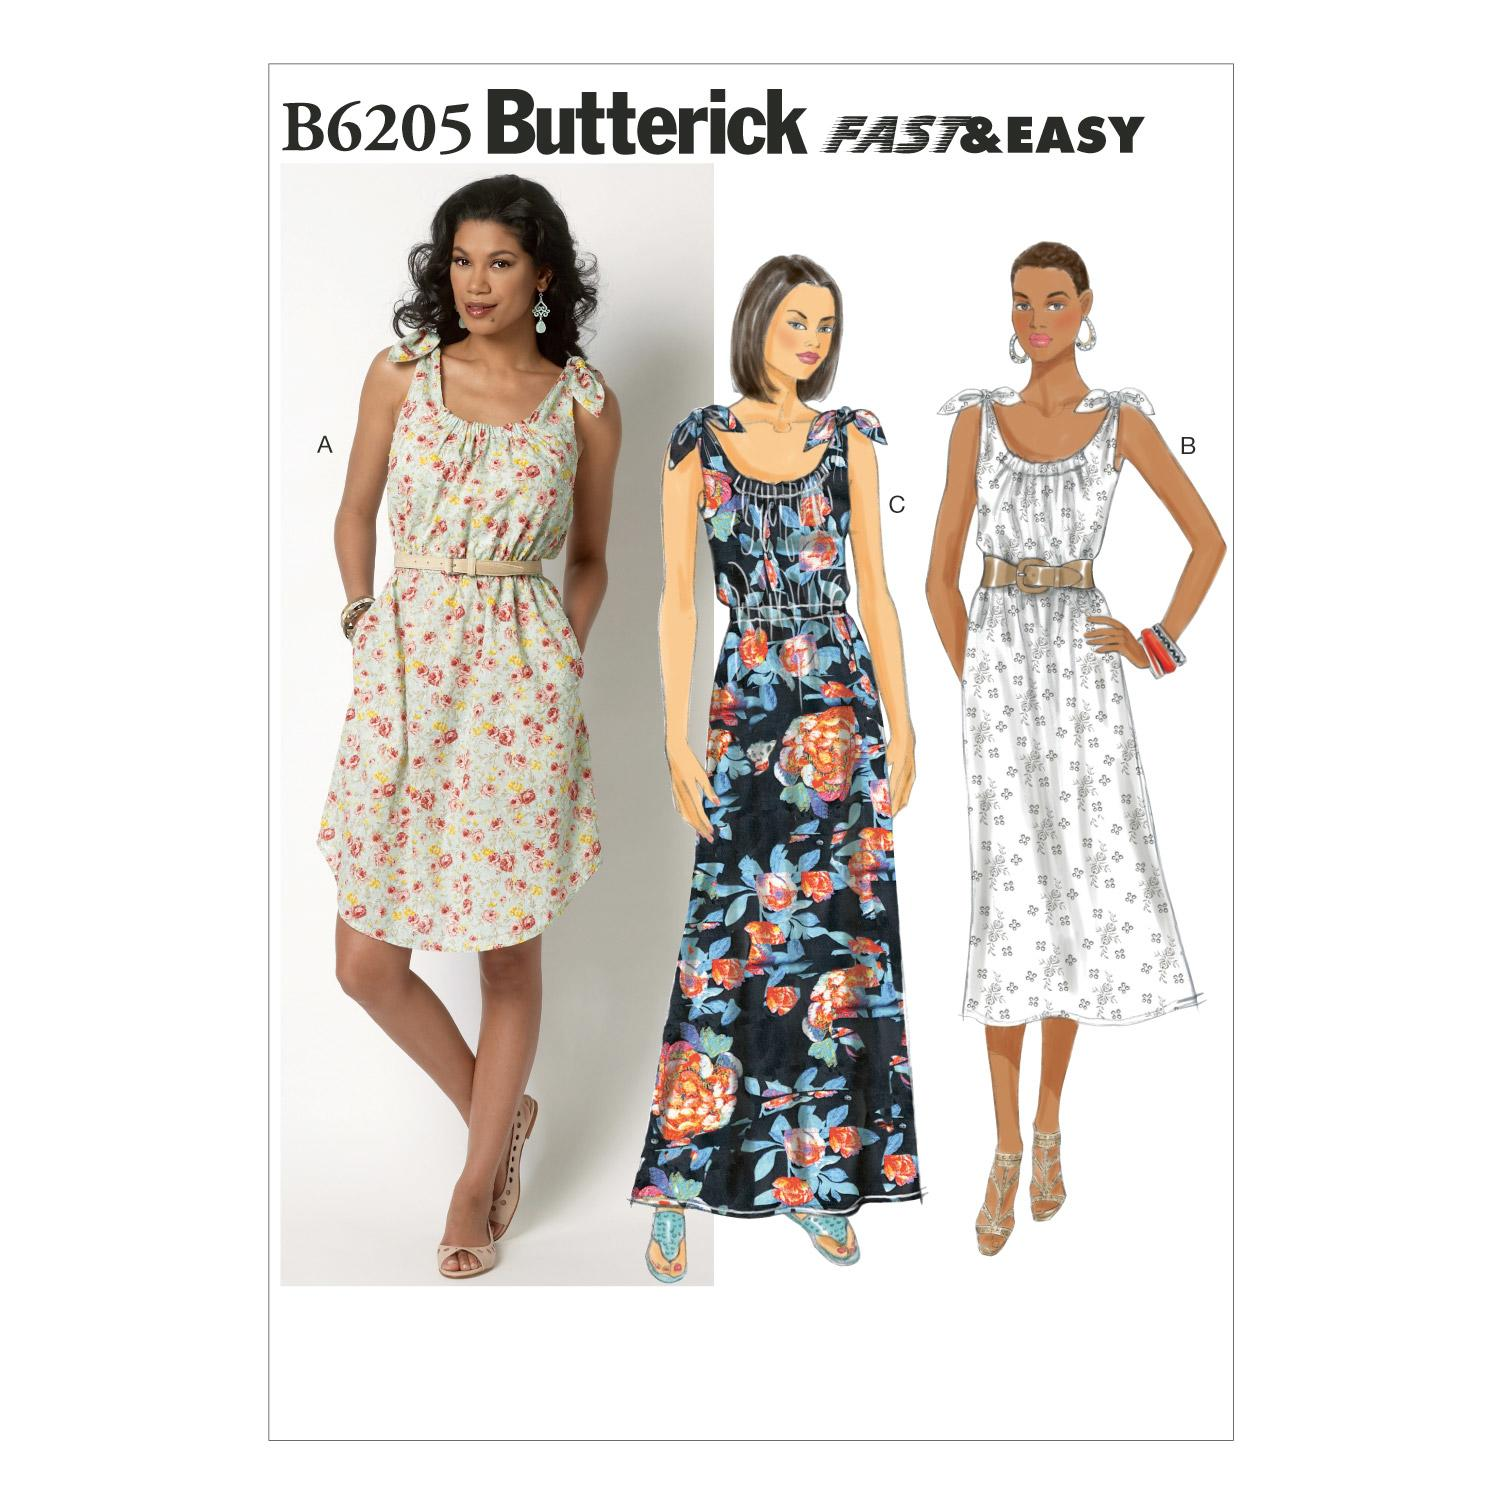 Butterick B6205 Misses' Dress